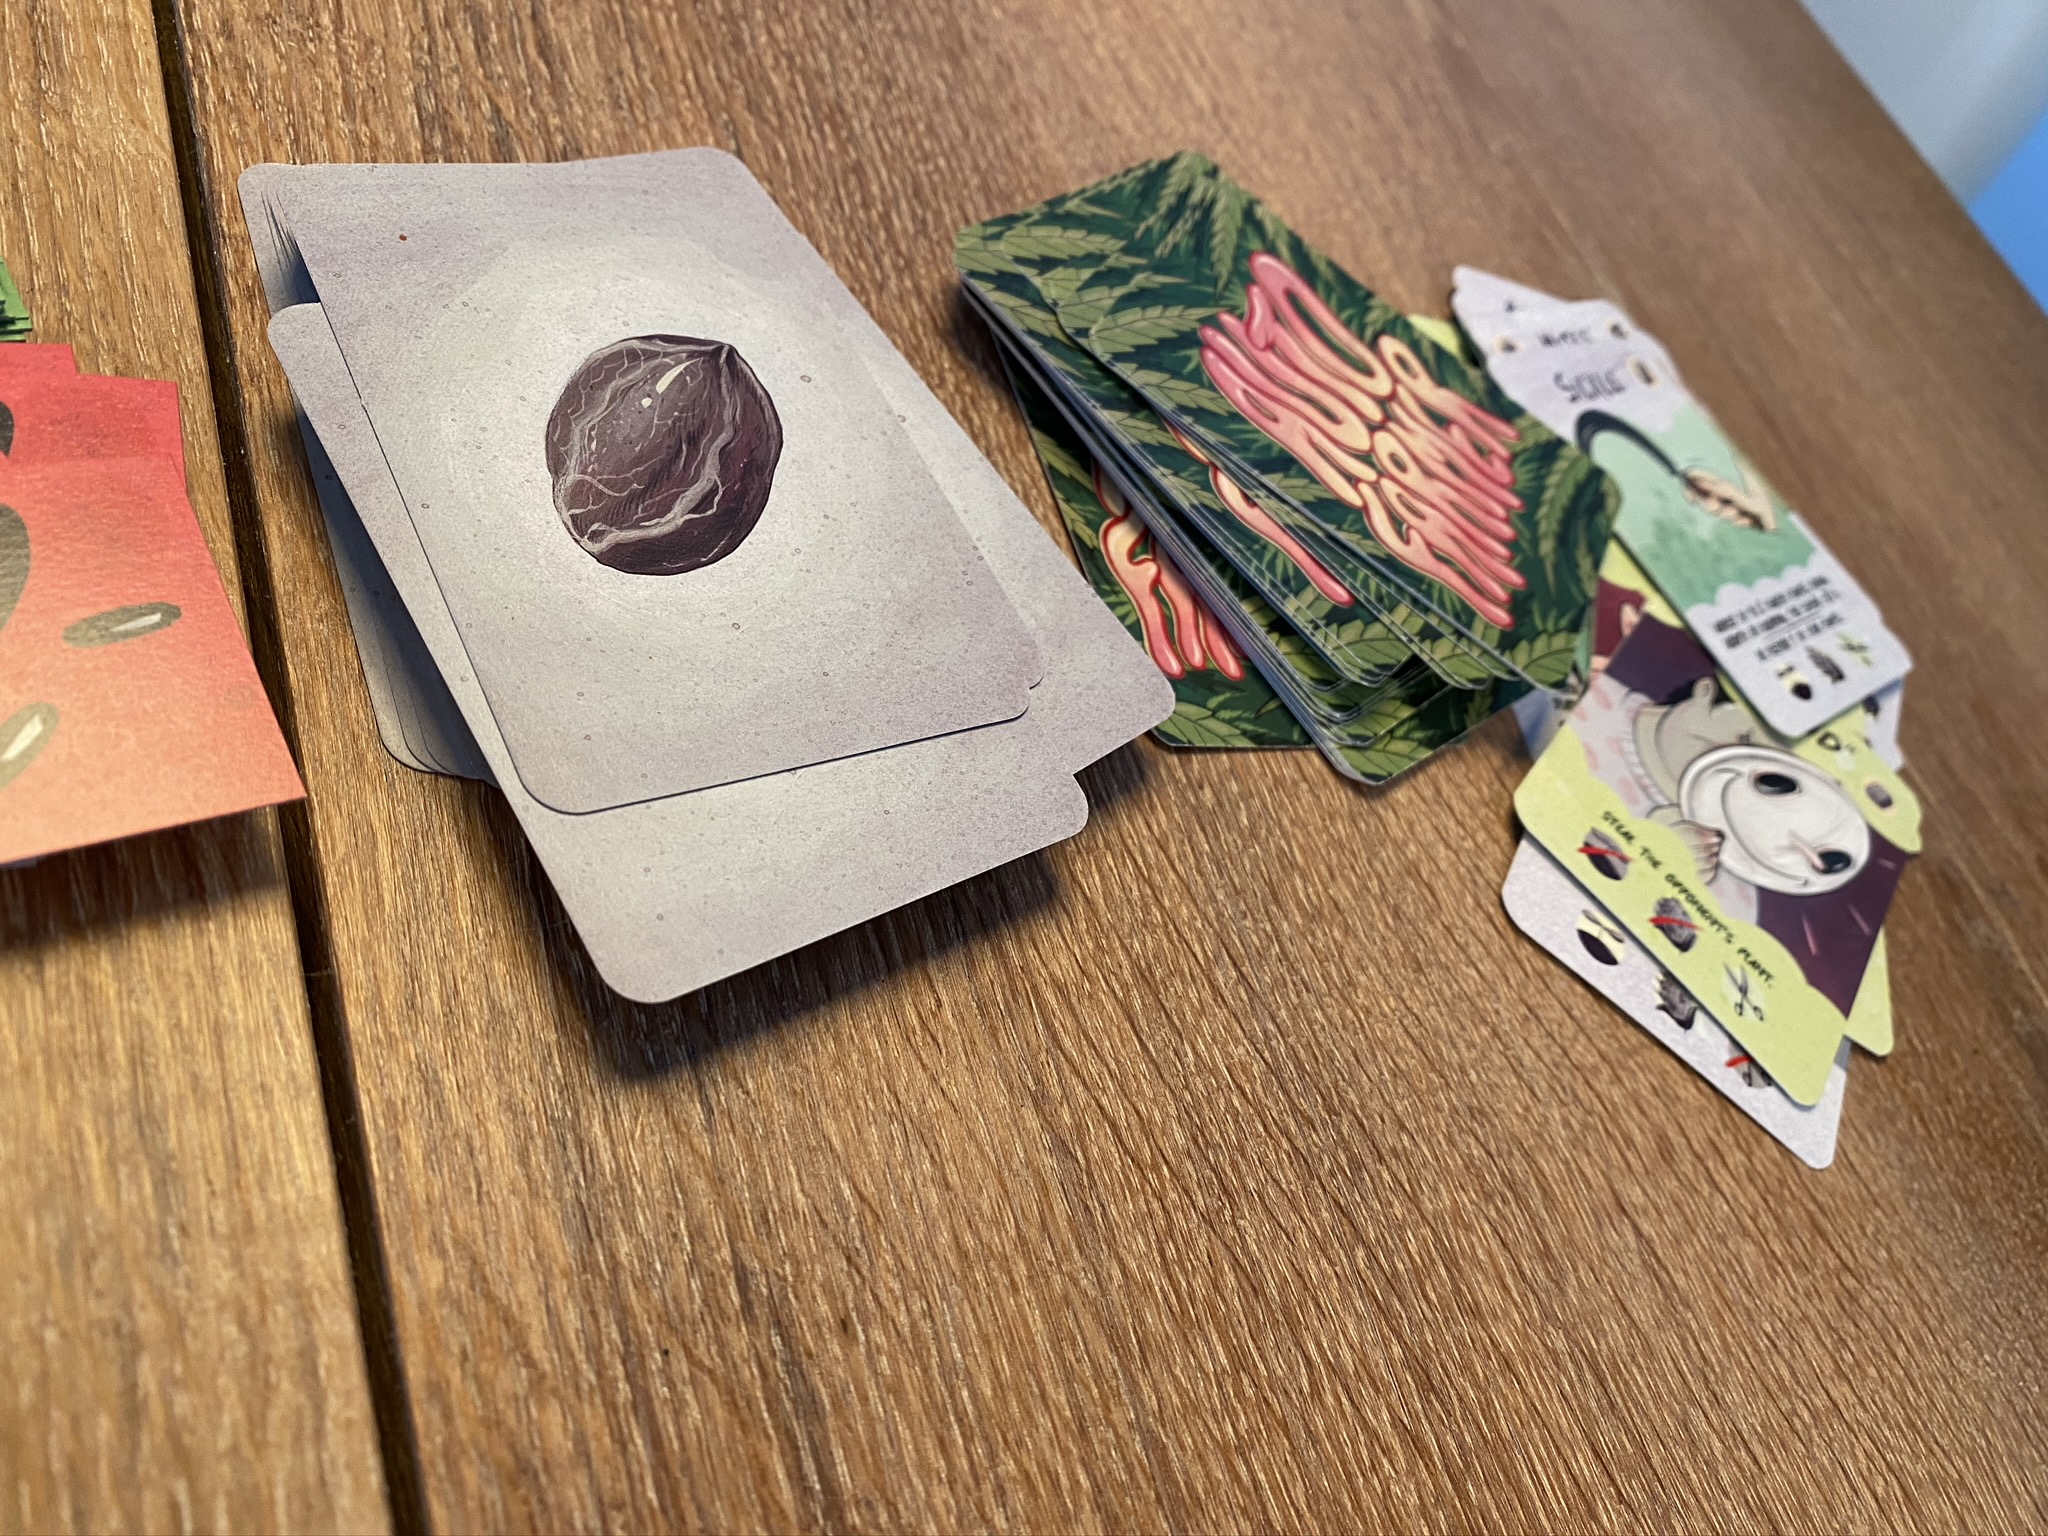 Seeds deck and action deck and discards